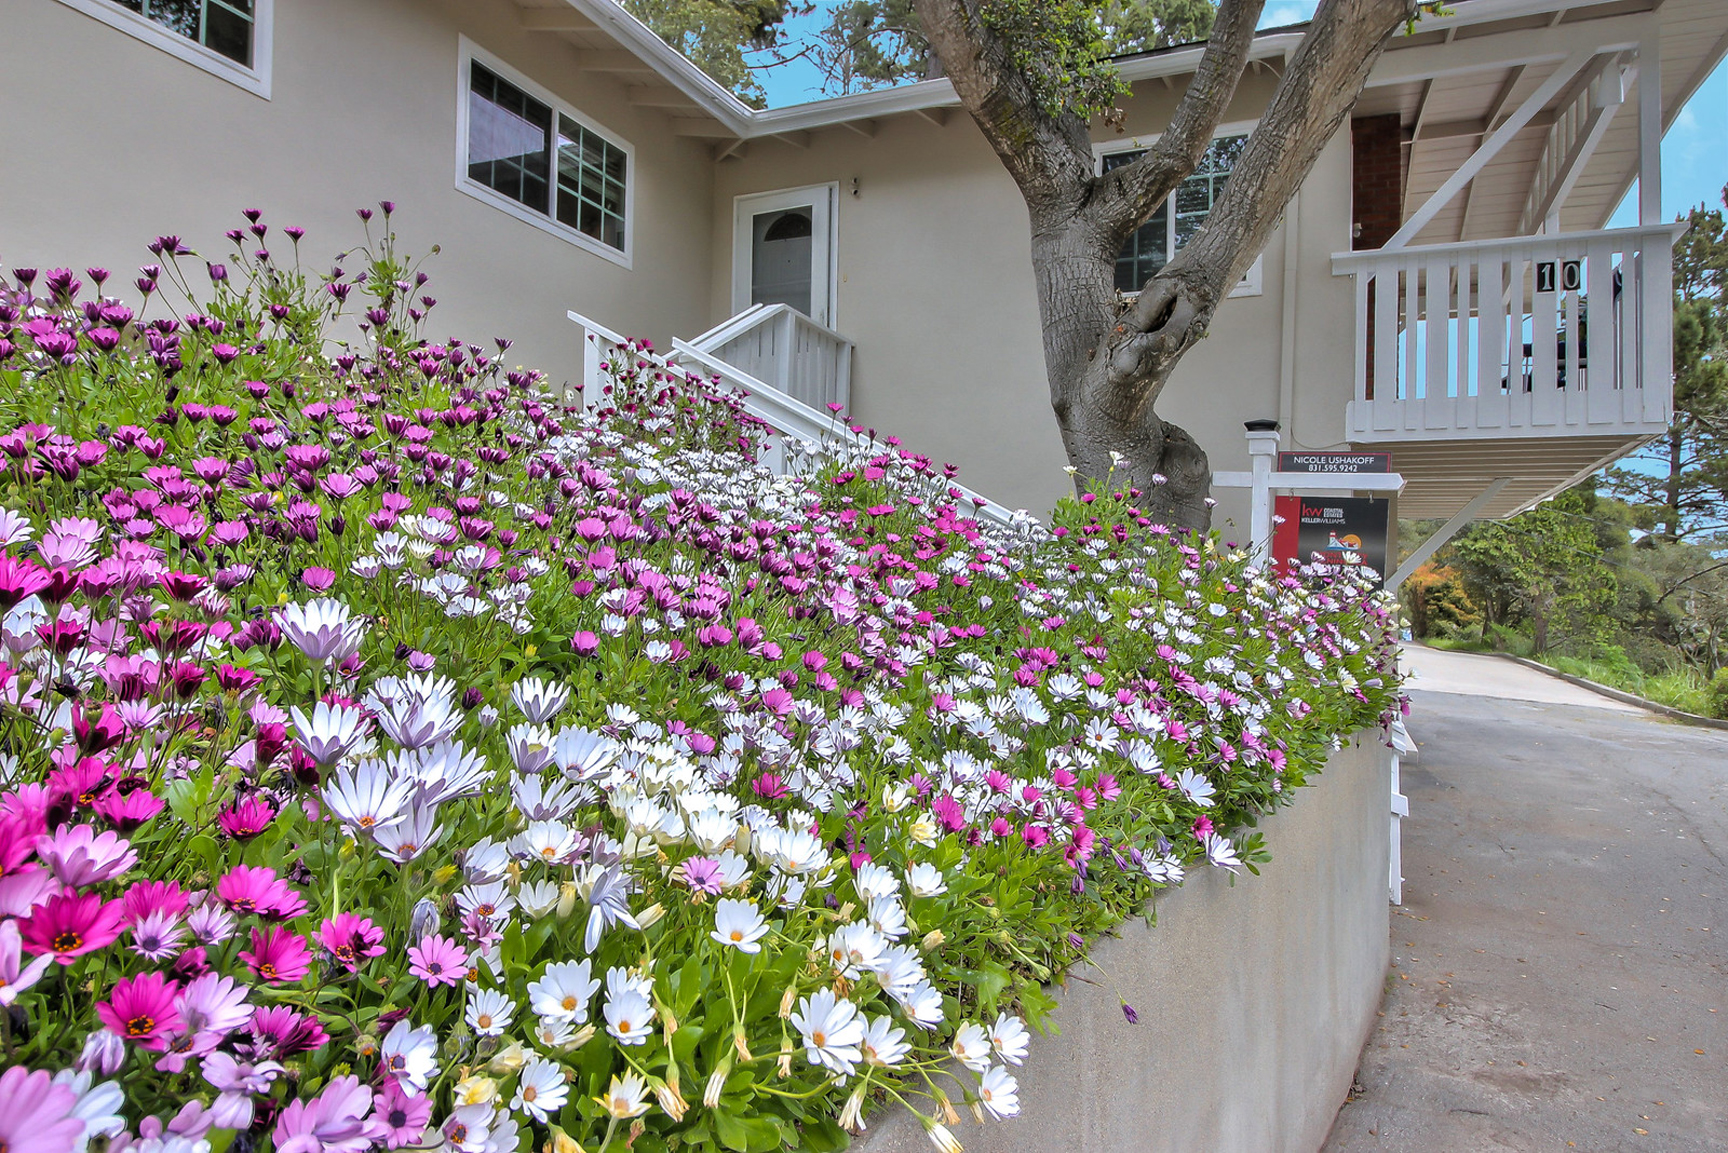 Monterey Home for sale at 10 Castanada Place